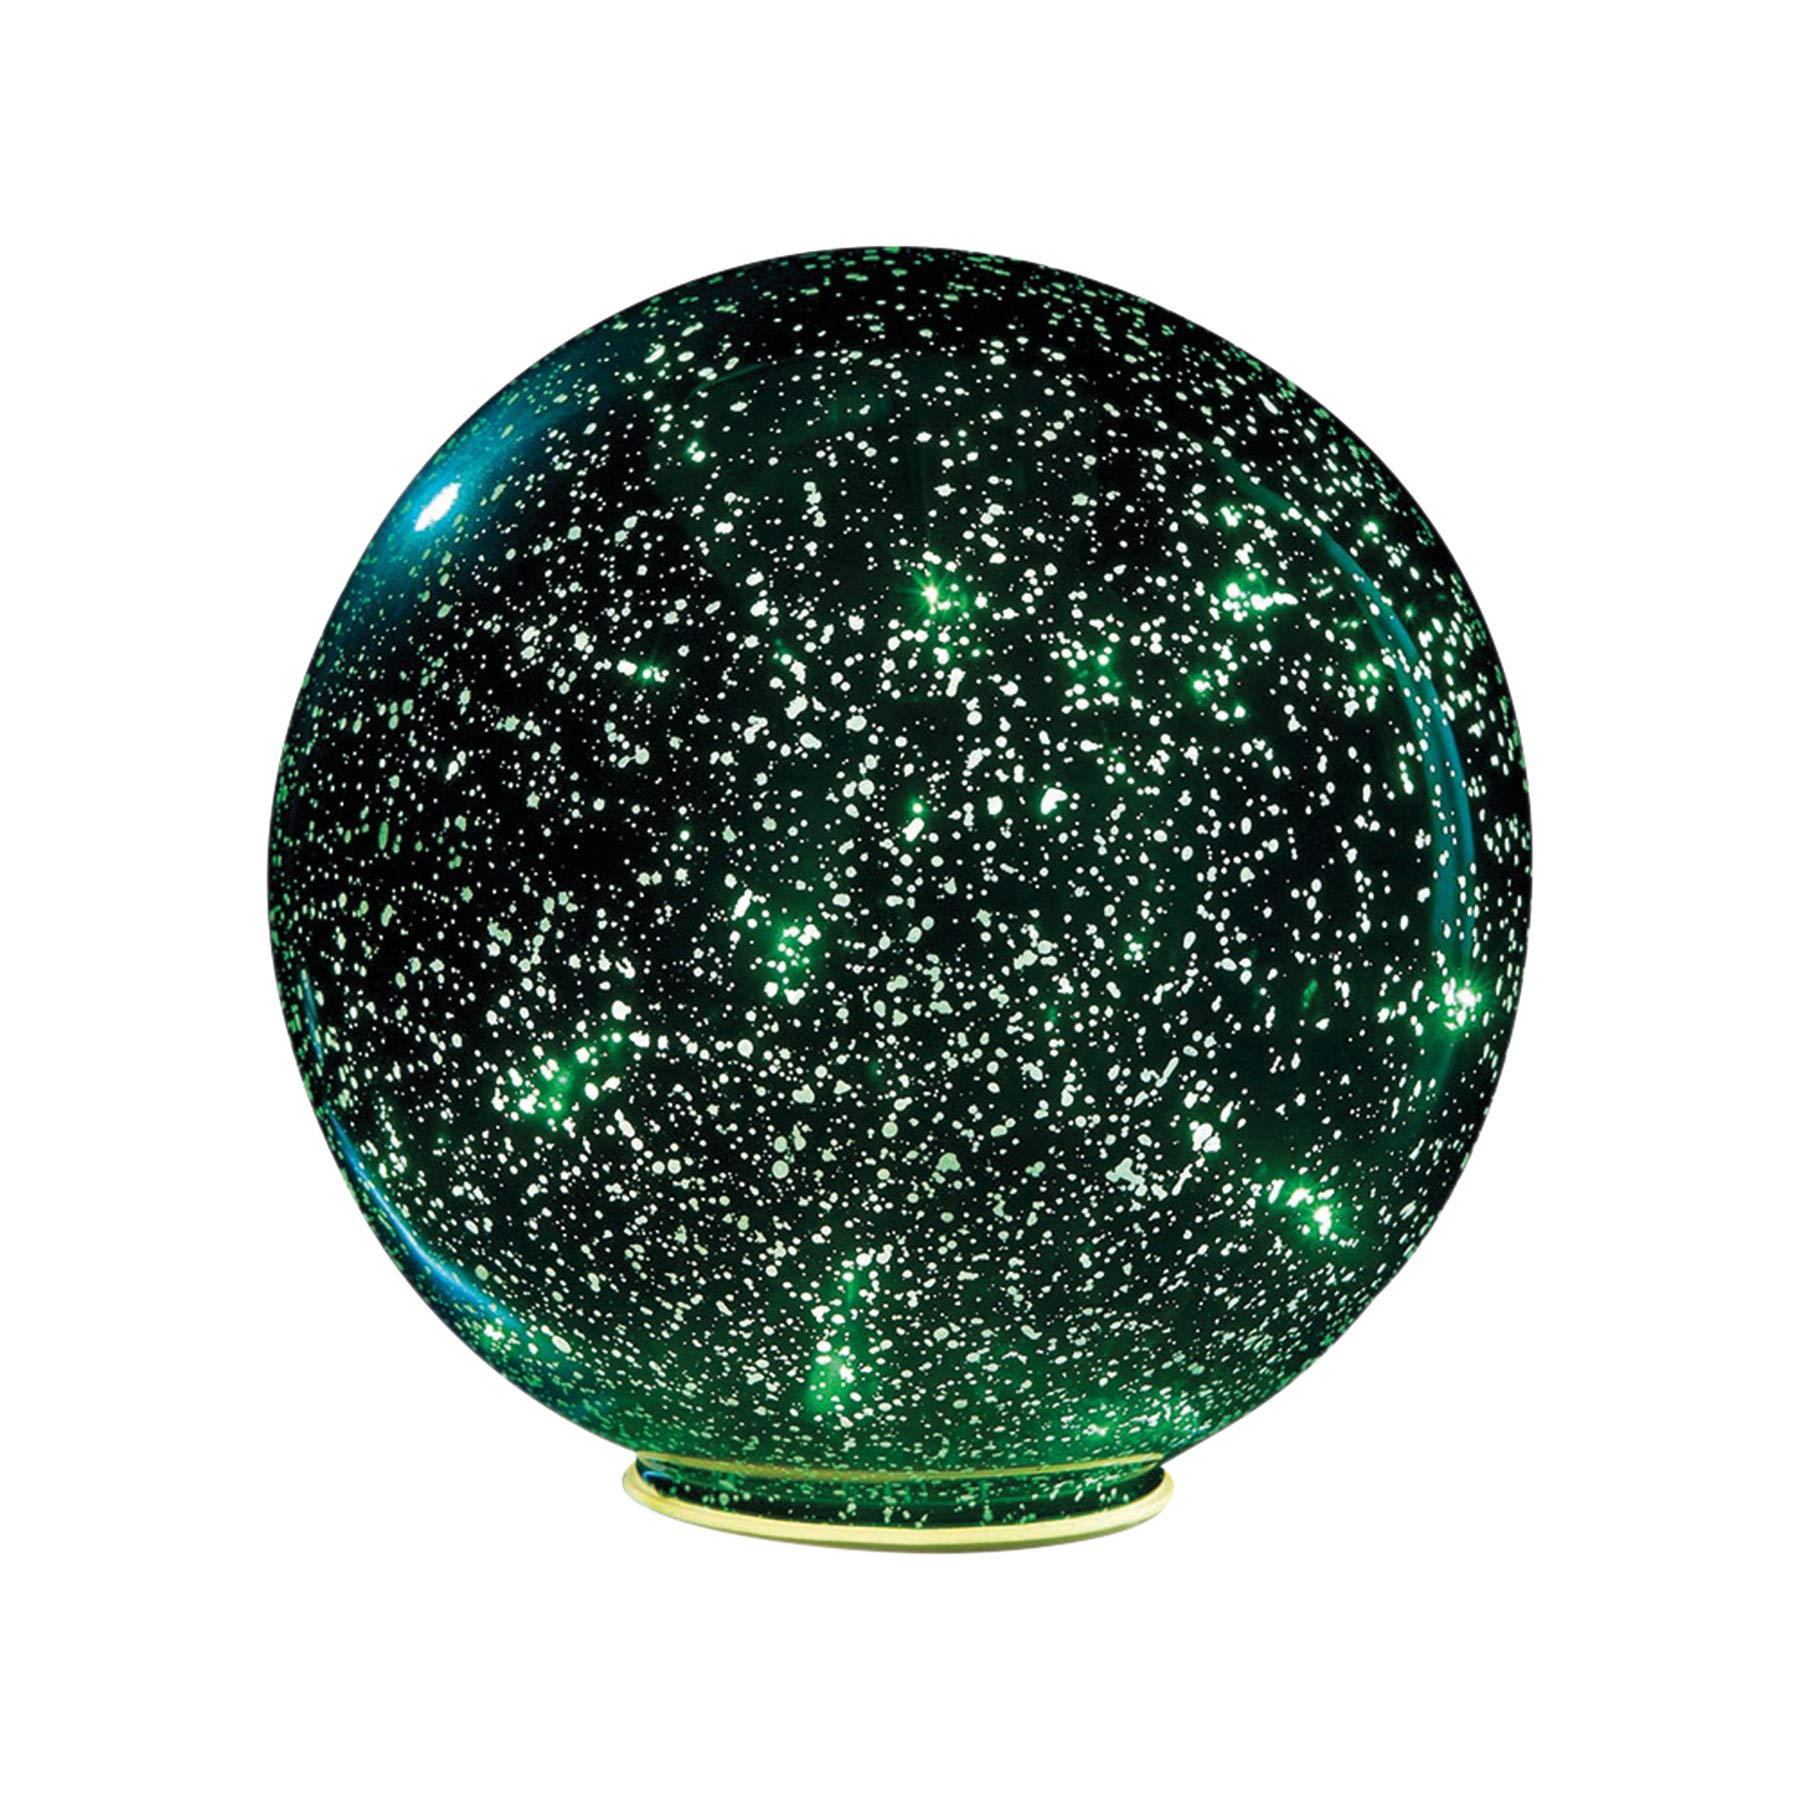 SIGNALS Lighted Mercury Glass Ball Sphere - Green - Large